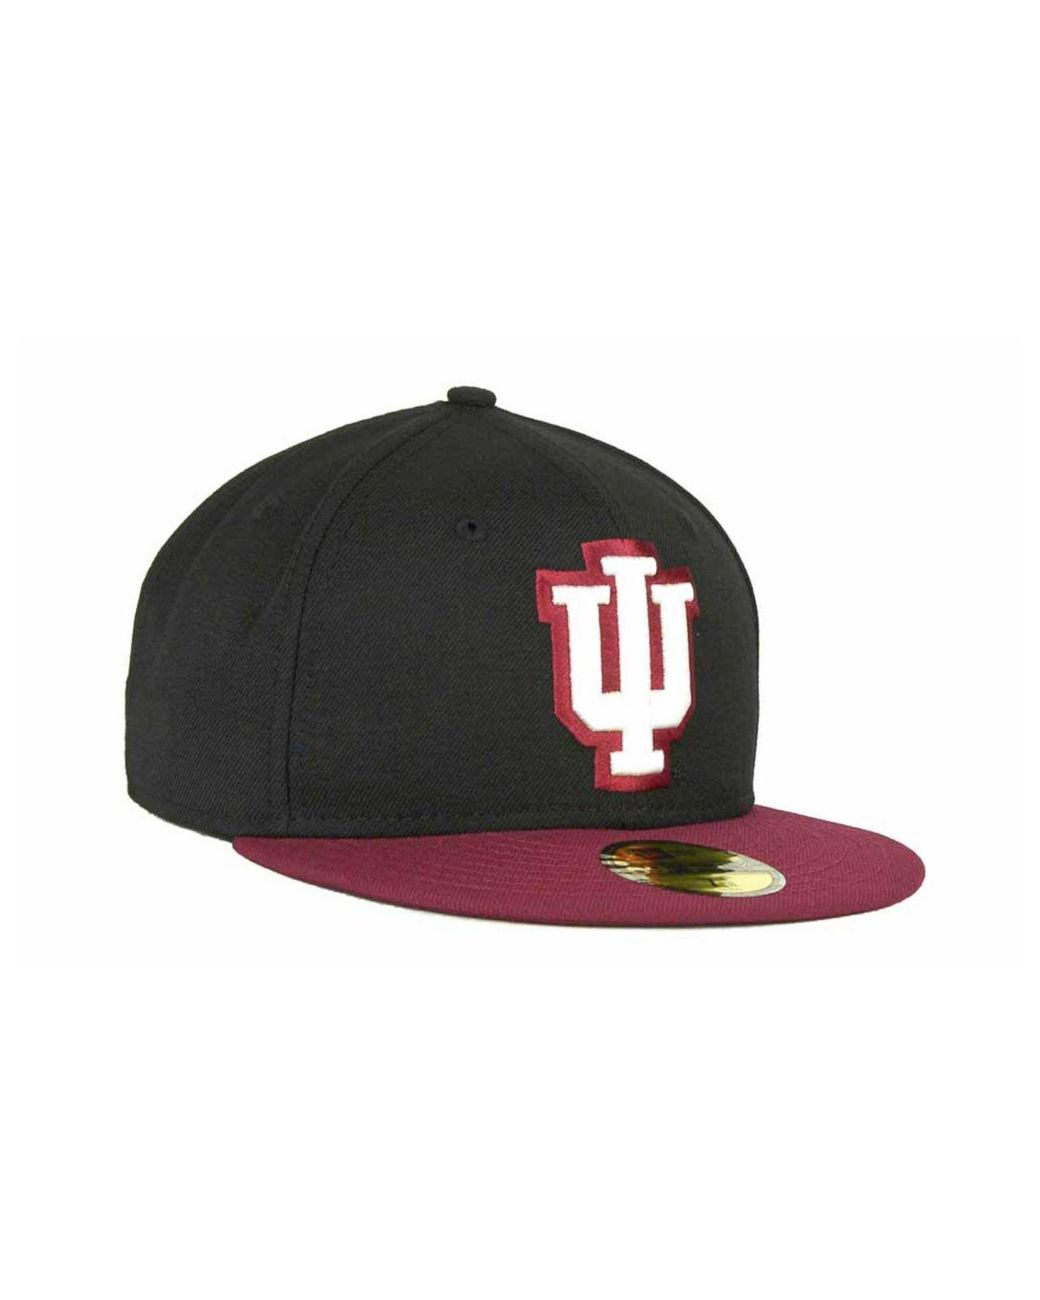 quality design best prices popular brand KTZ Wool Indiana Hoosiers 2 Tone 59fifty Cap in Black/Crimson ...